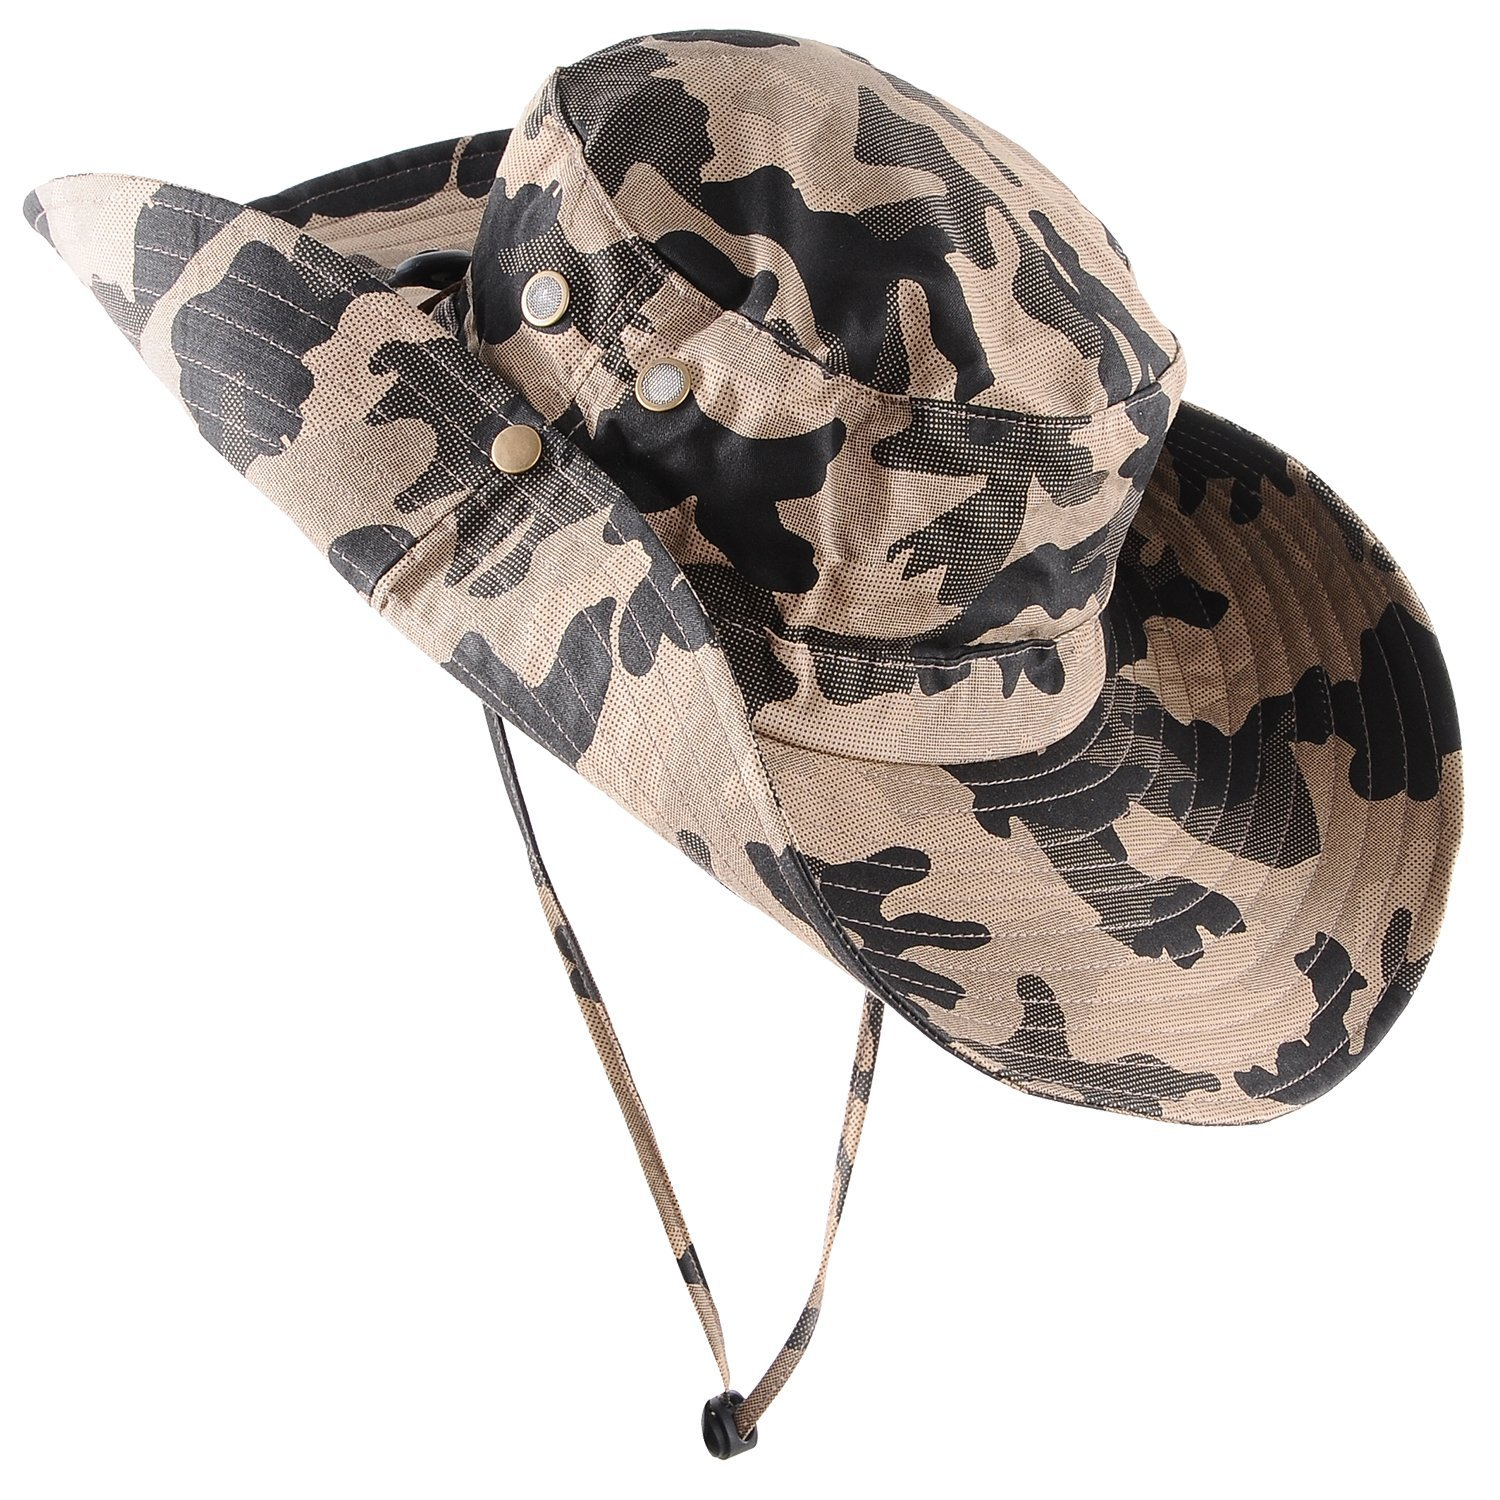 eab71928d79 Micoop Wide Brim Military Camouflage Hat Summer Fishing Hunting Camping  Hiking Cap Outdoor Sun Hat Boonie Hat